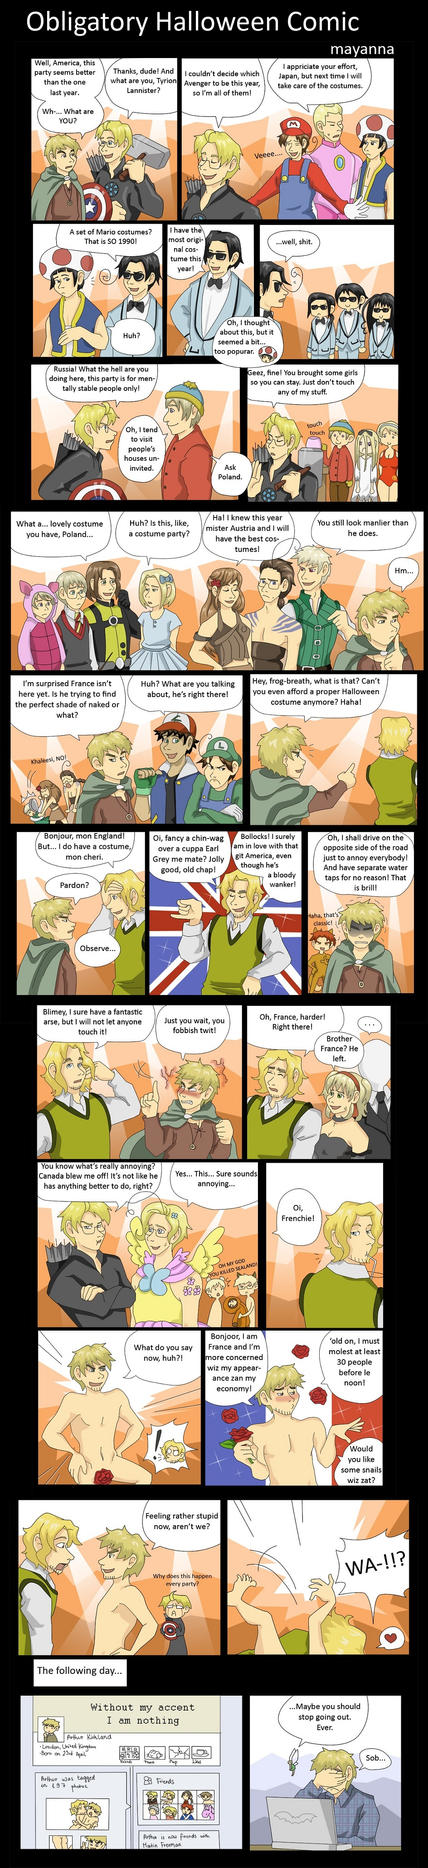 Hetalia: Obligatory Halloween Comic by mayanna